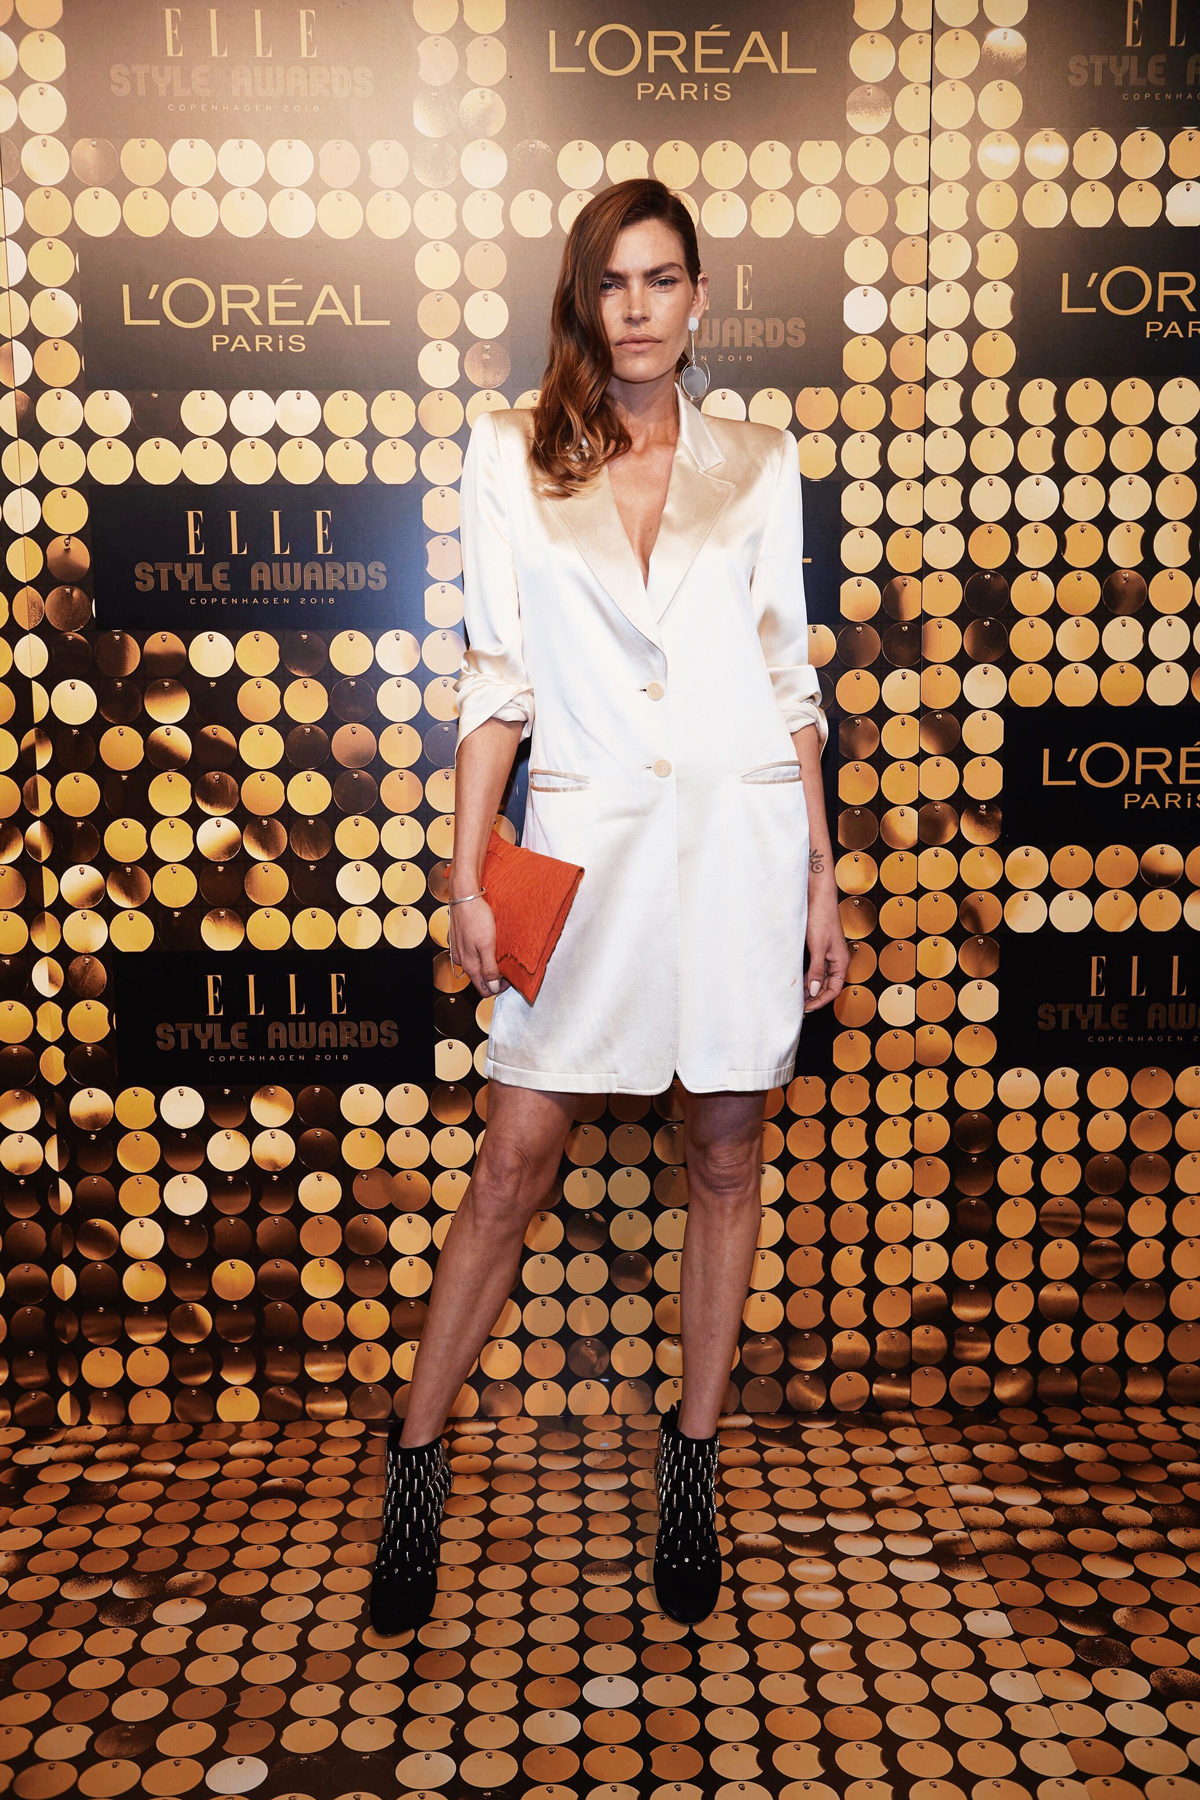 Lykke-May-Andersen-ELLE-Style-Awards-2018-01-WEB.jpg